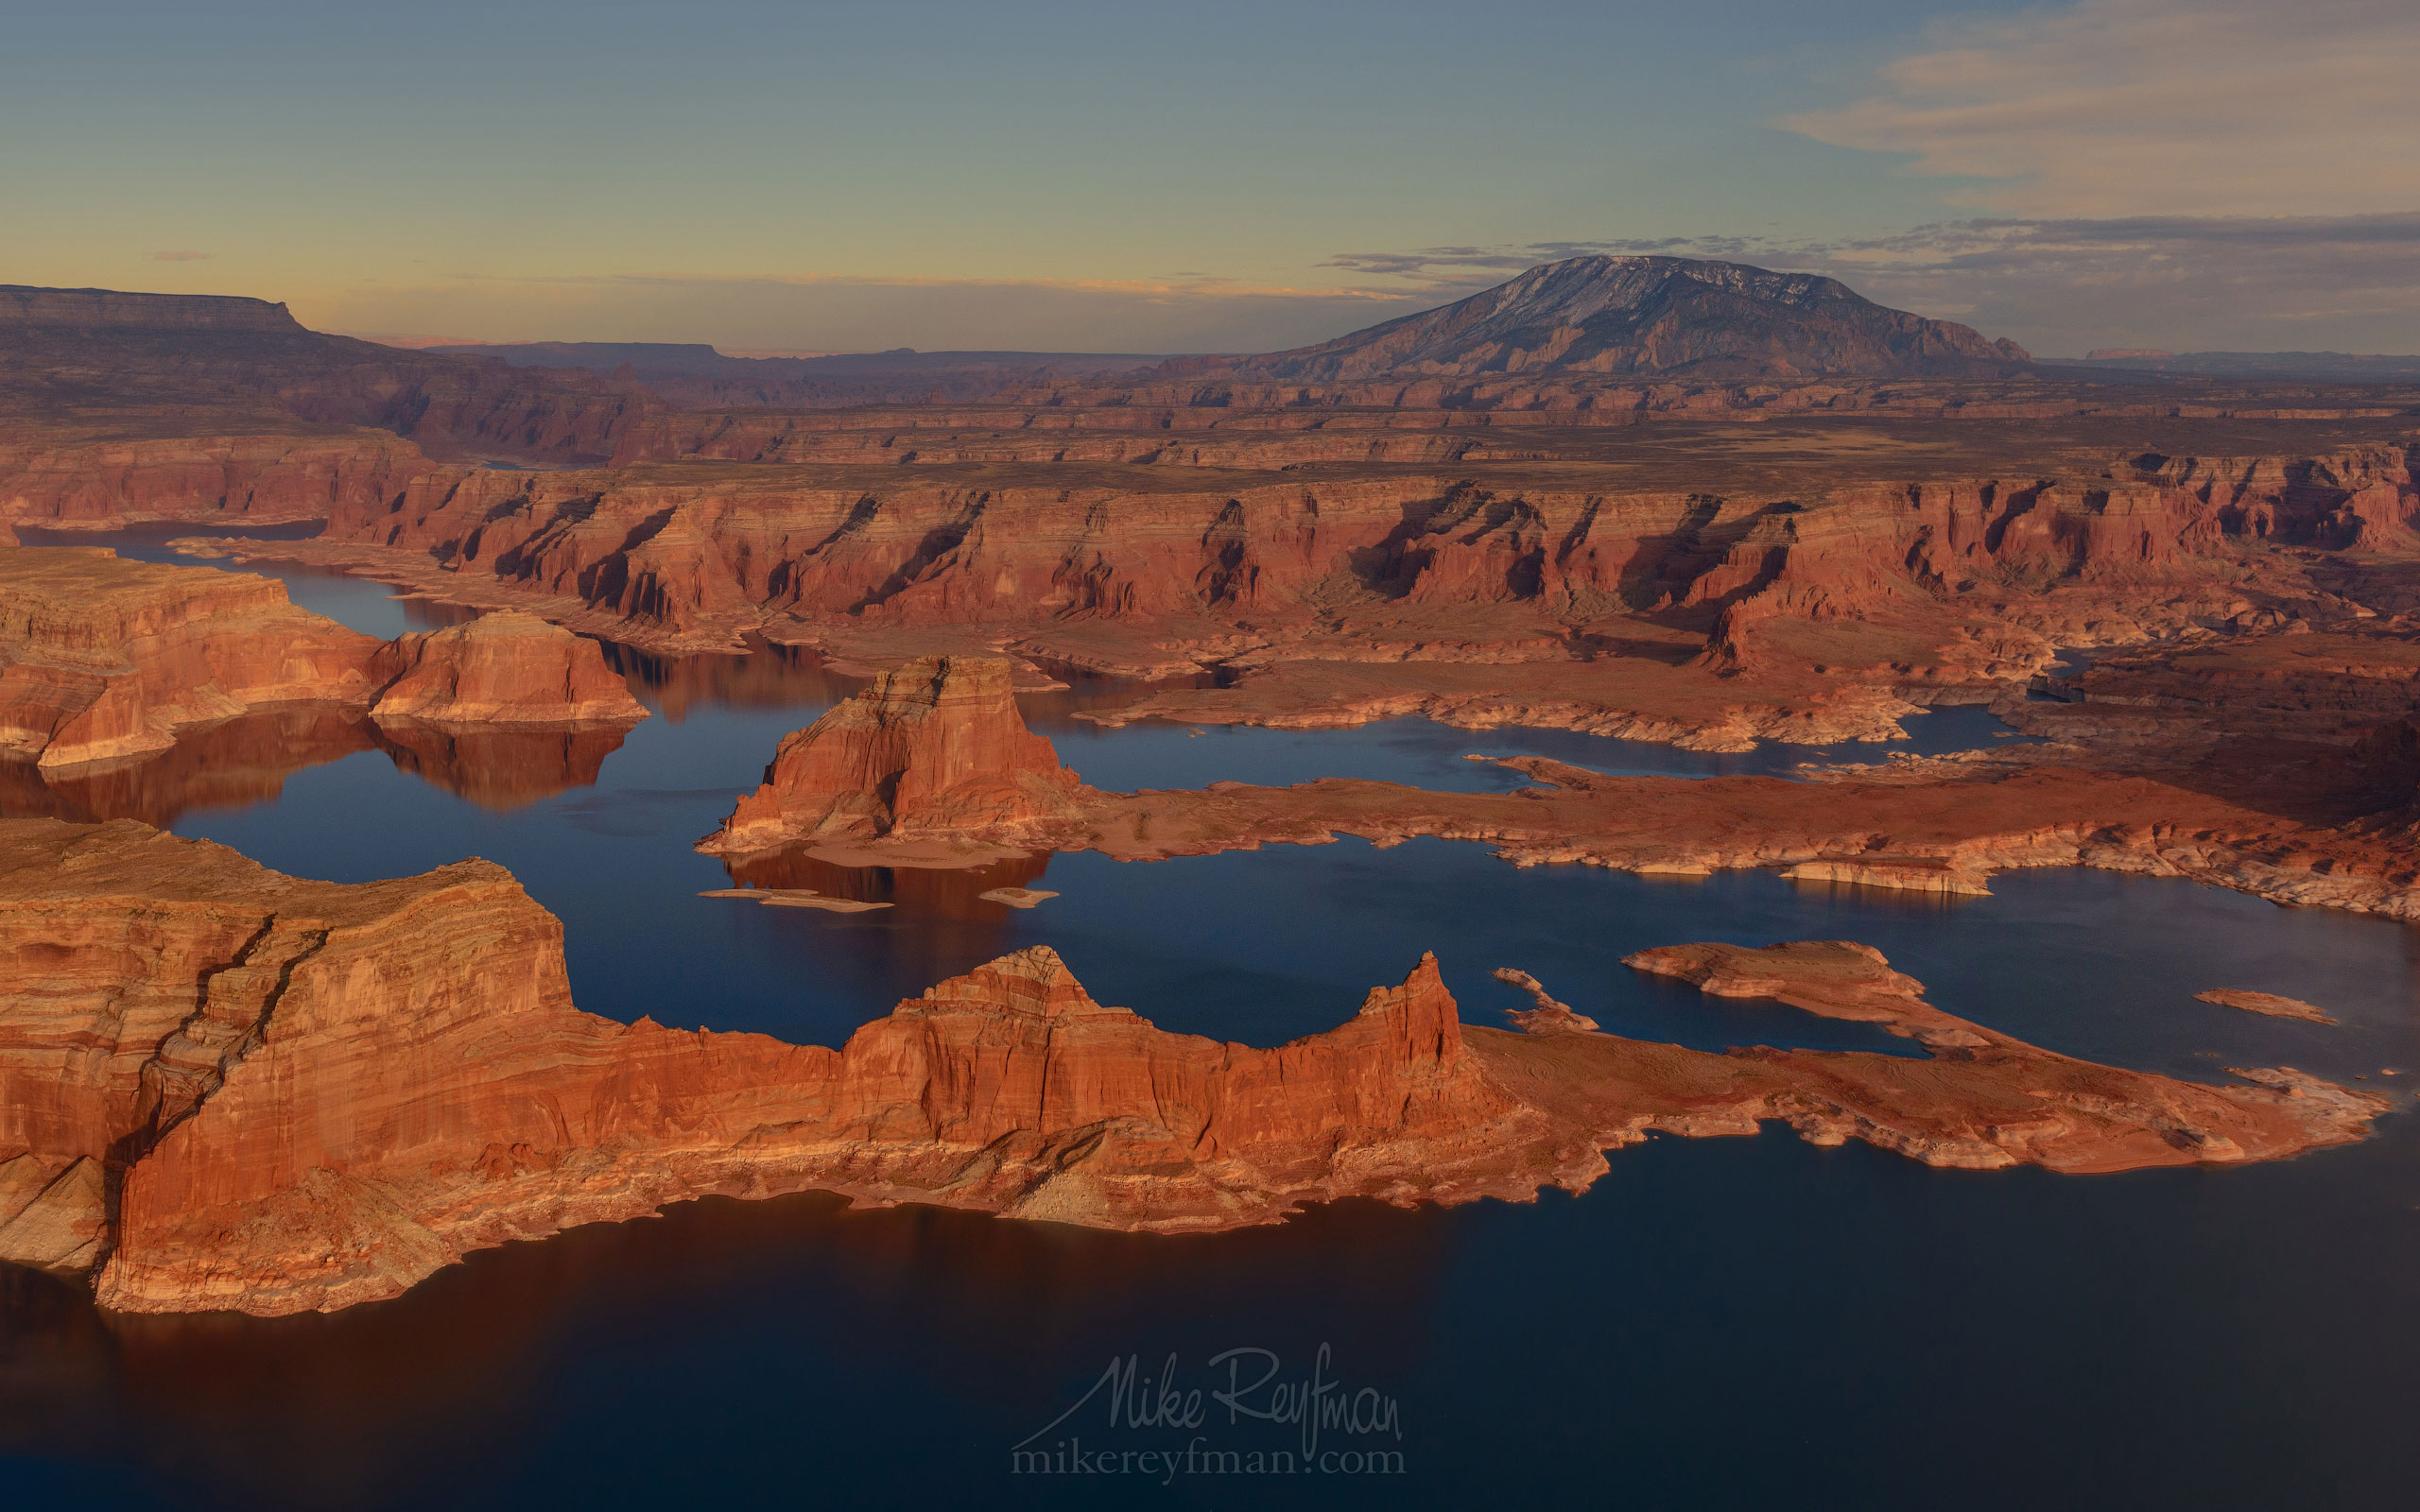 Lake Powell and Navajo Mountain. Glen Canyon NRA, Utah/Arizona, USA. Aerial. 026-LP3_D8C9411.jpg - Lake Powell, Glen Canyon NAR. Colorado and Sun Juan Rivers. Utah/Arizona, USA  - Mike Reyfman Photography